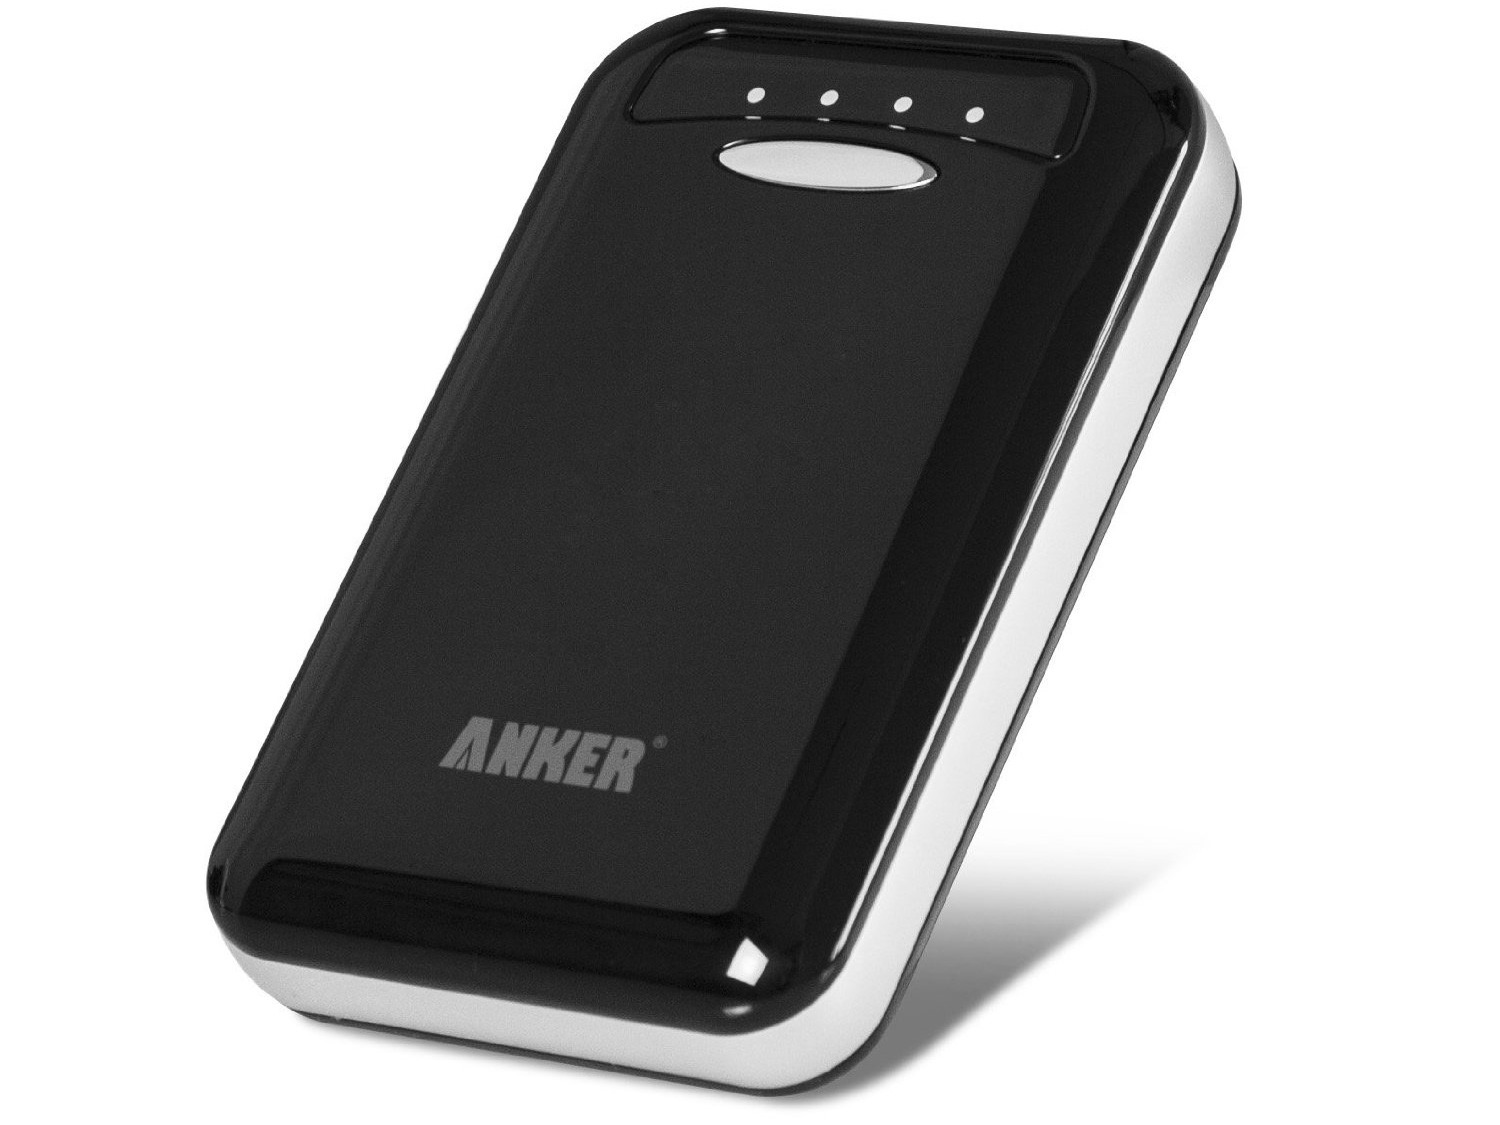 [Deal Alert] Anker Astro E4 13000mAh External Battery Pack For $36.99 Plus Free Shipping With Coupon